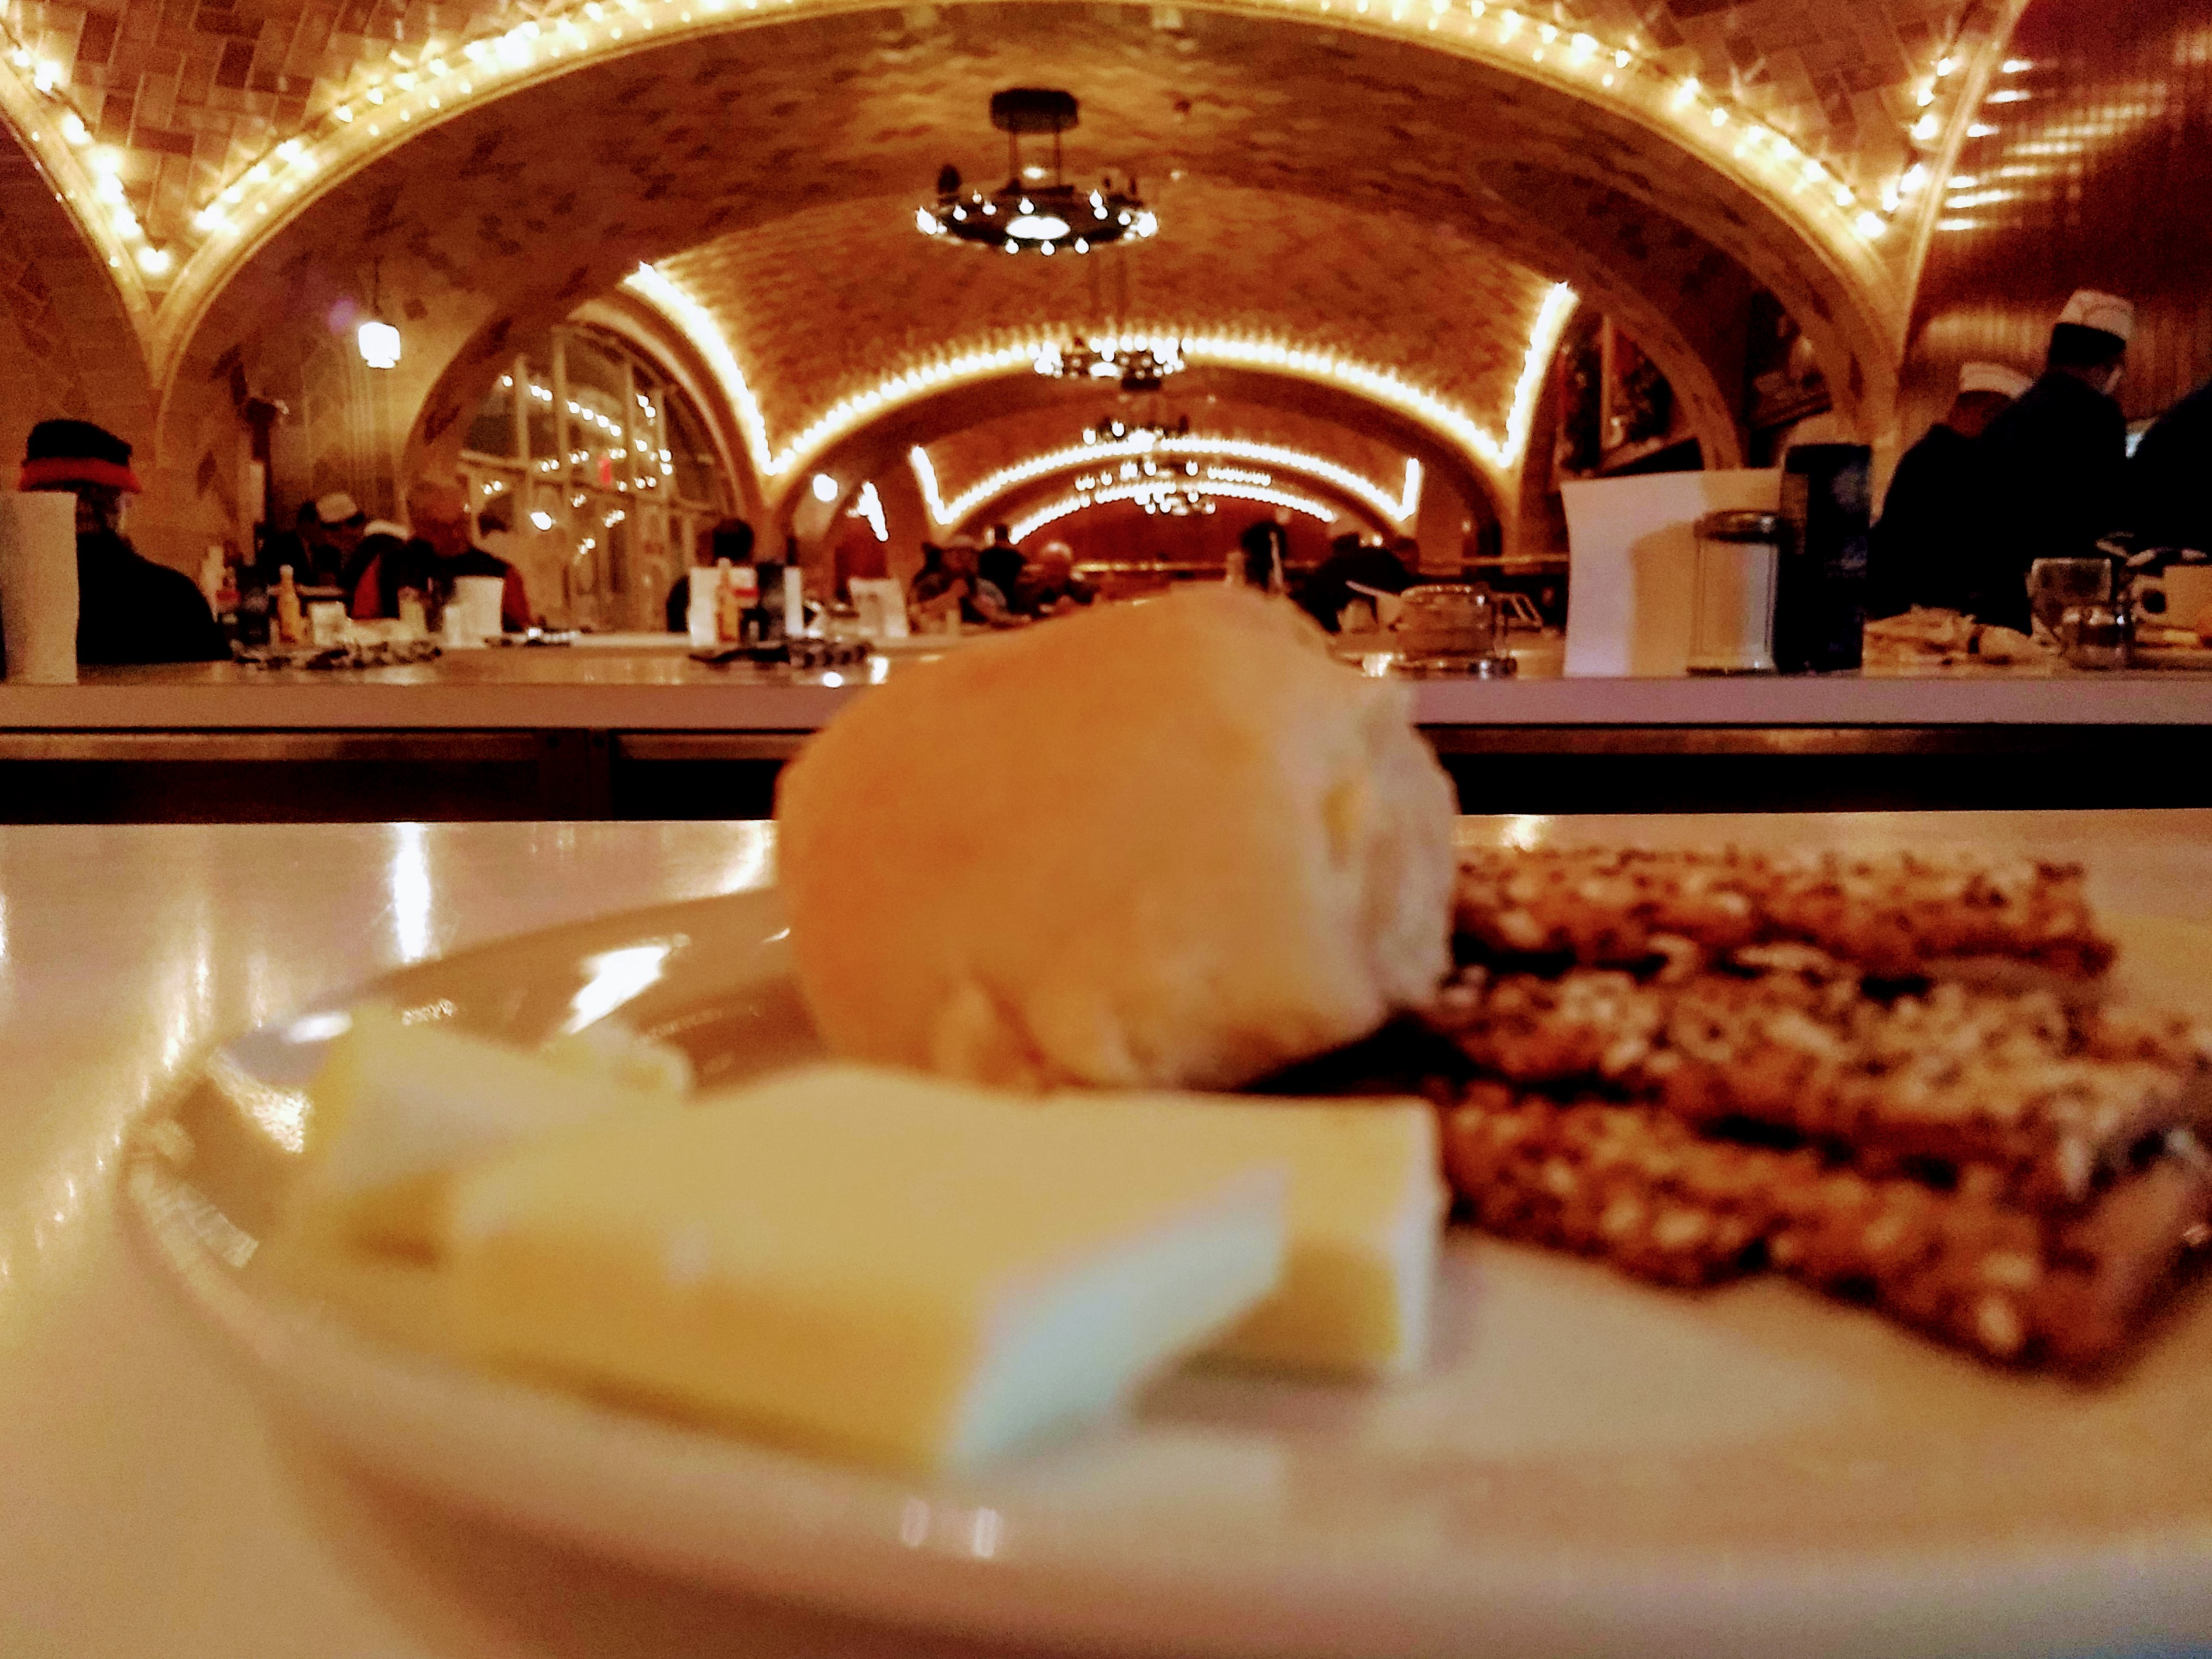 Lunch in Oyster Bar, Grand Central